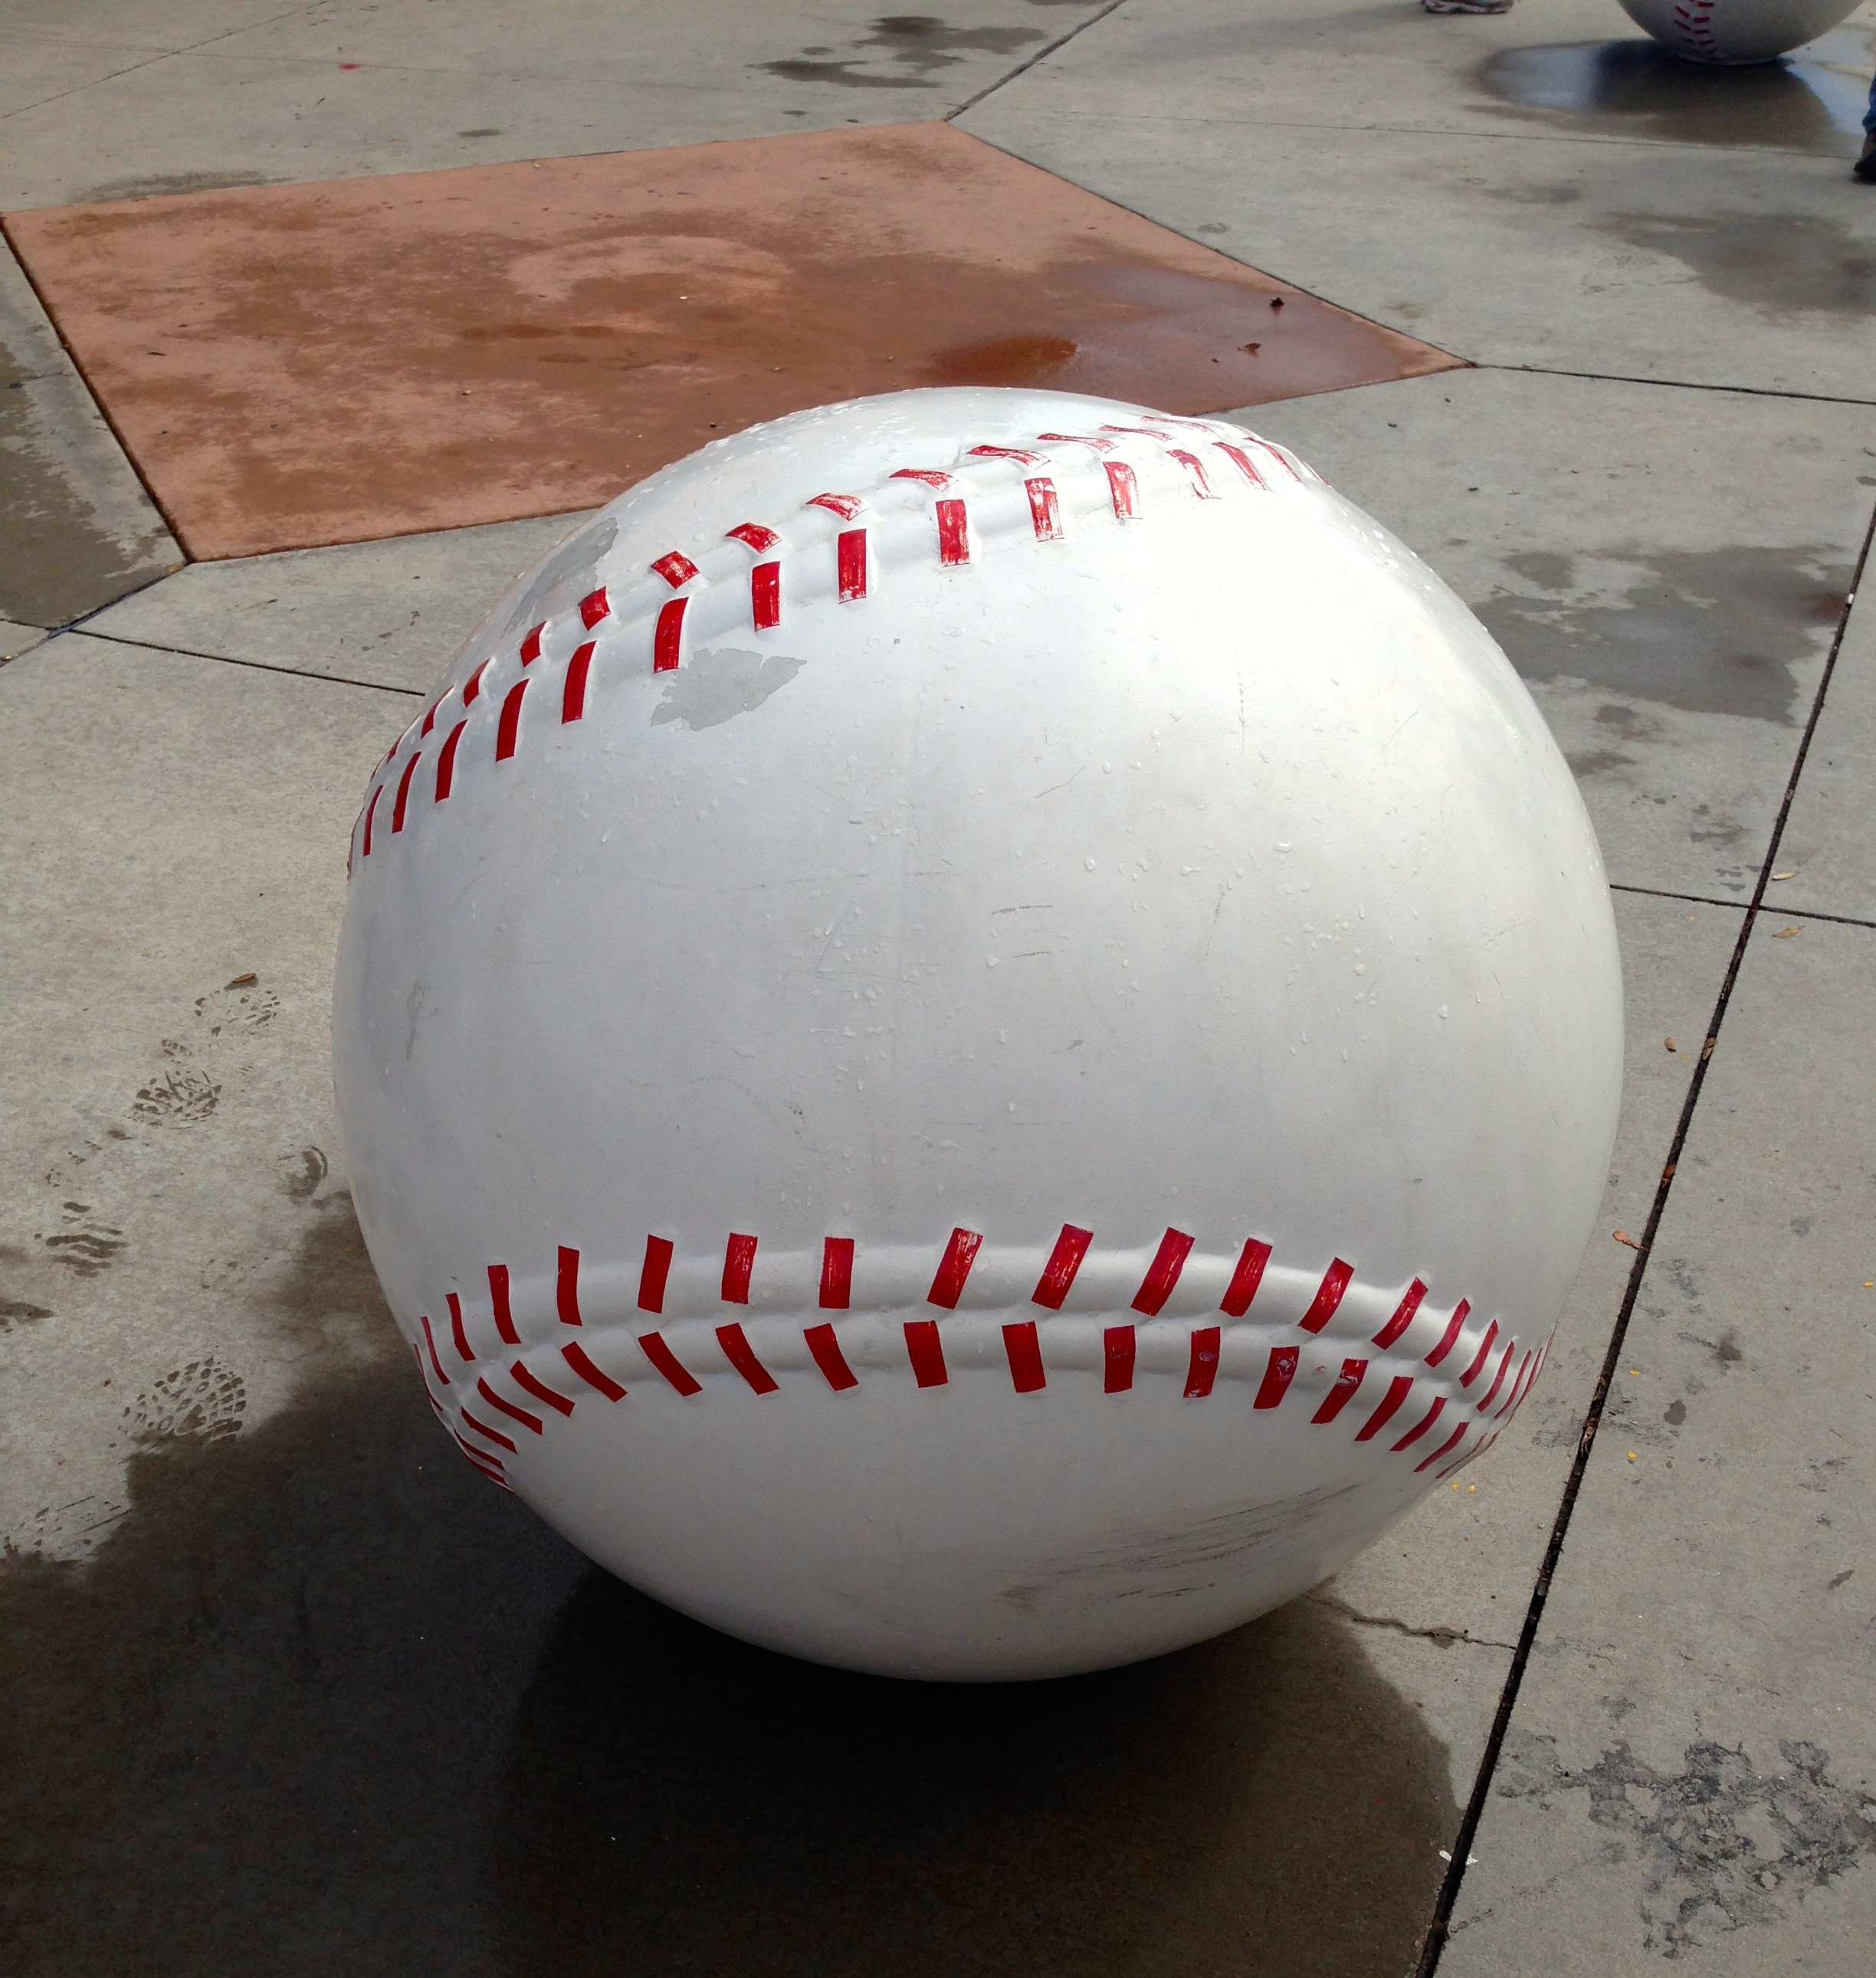 BASEBALL – Symbol of Summer